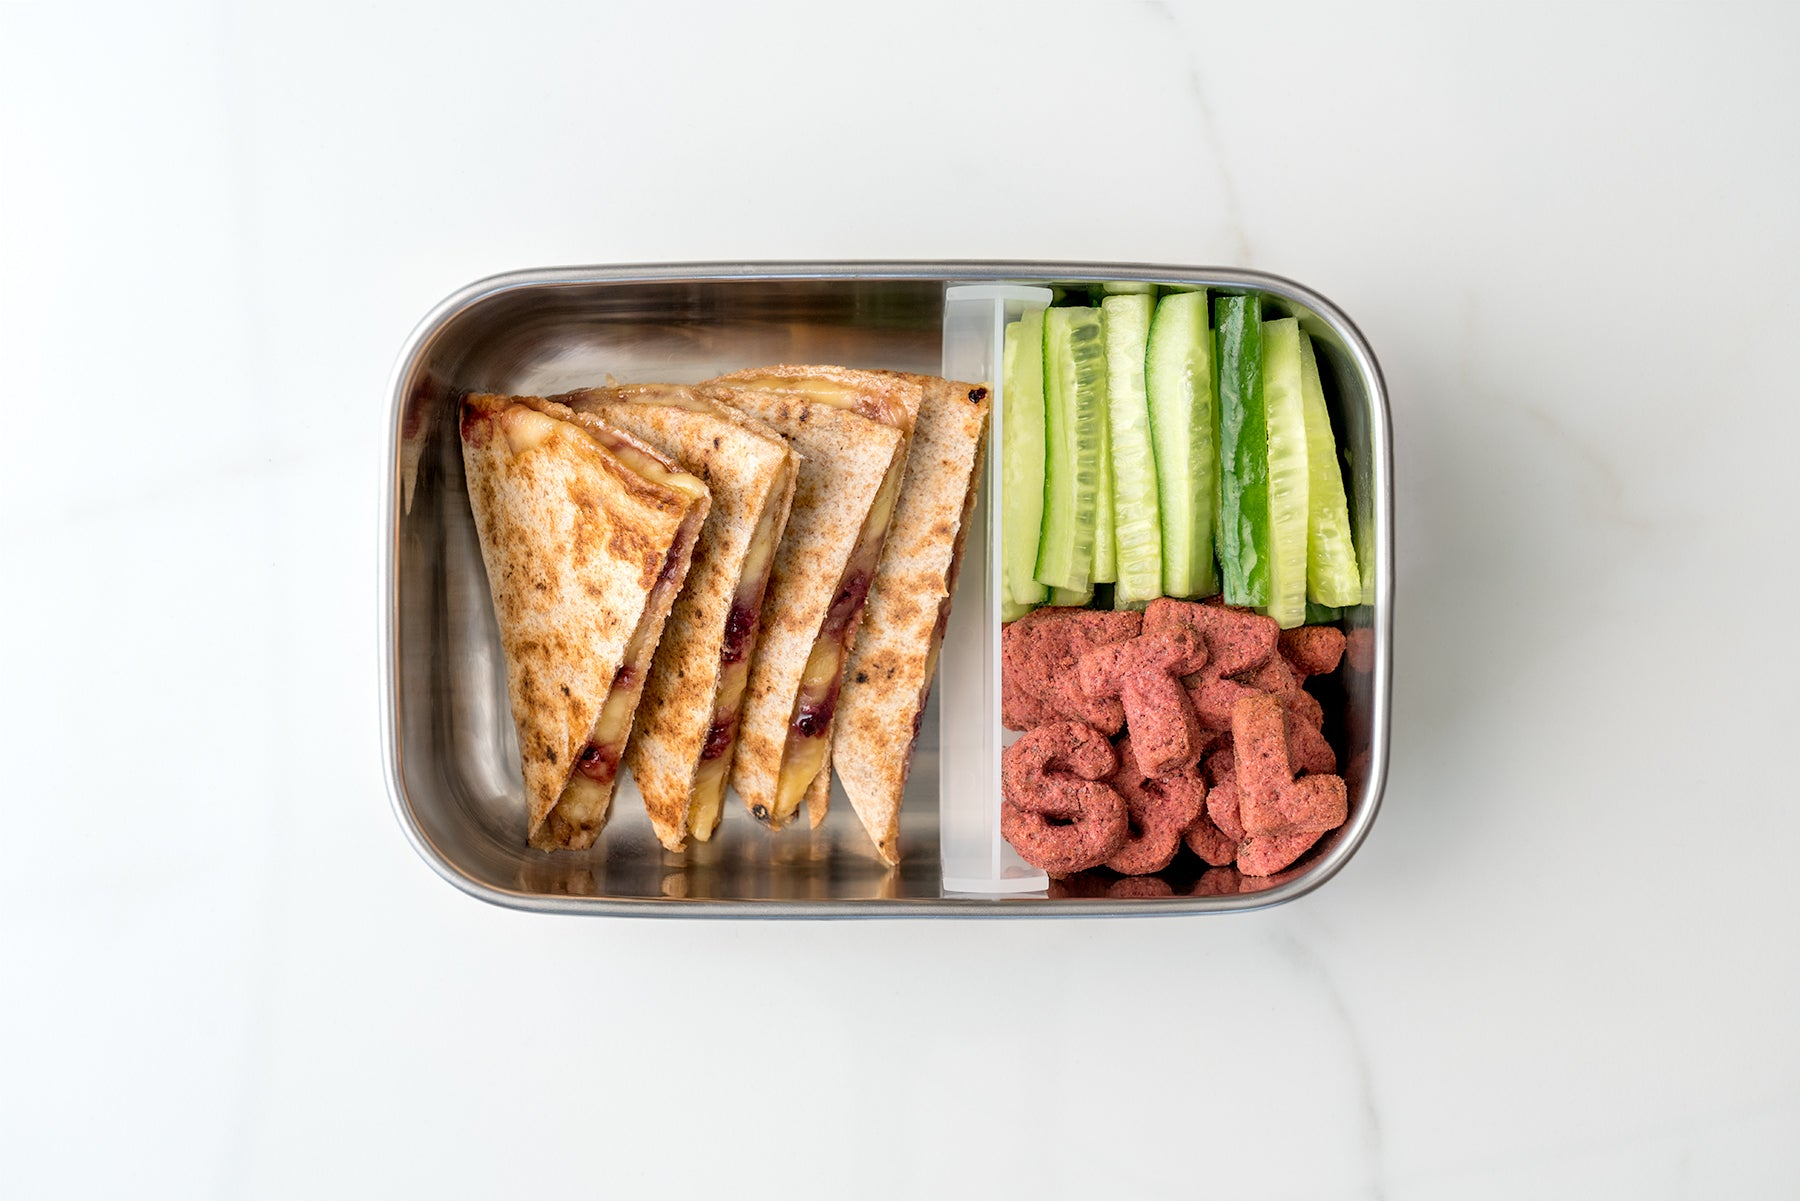 Lunchbox #1 Jammy Quesadilla